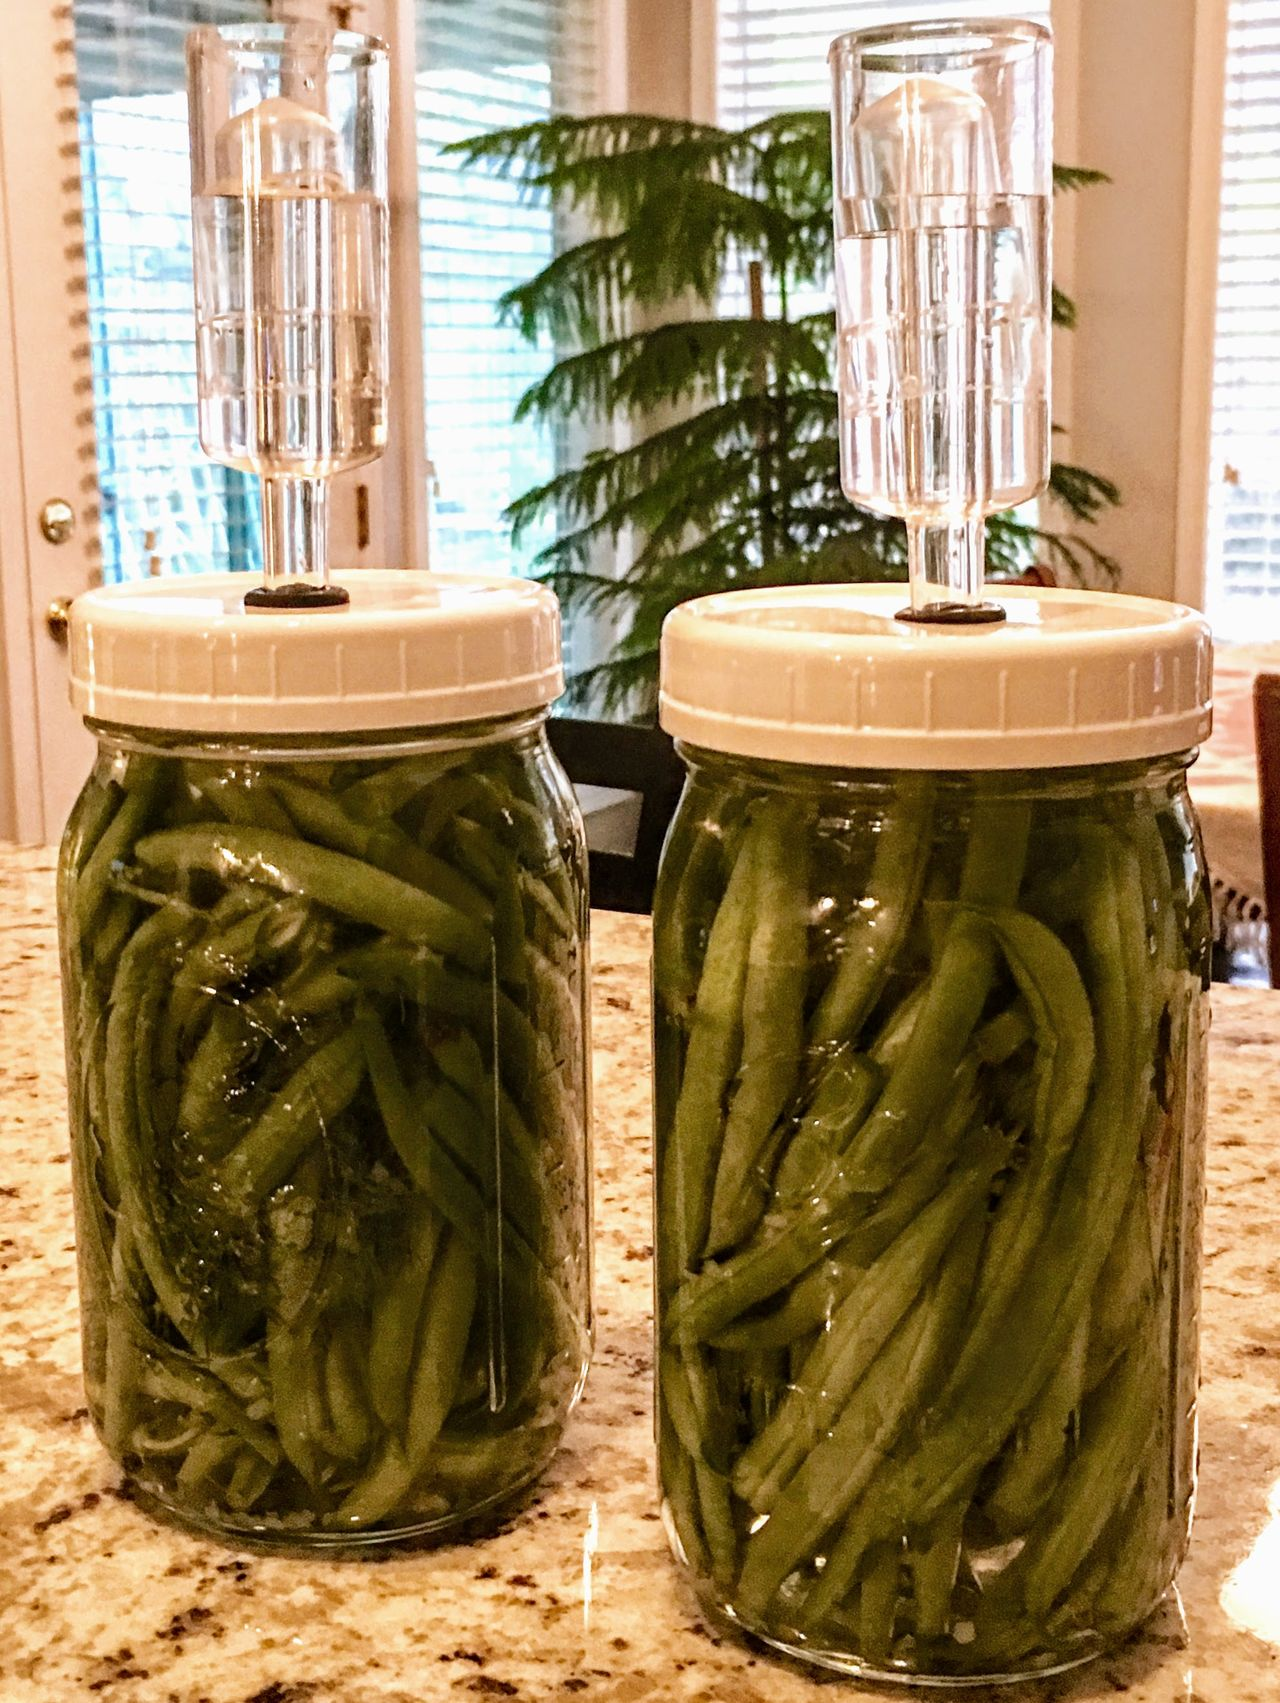 Lacto fermented dill beans Beans Canning Close-up Cultures Day Dill Fermentation Freshness Healthy Eating Kitchen No People Nutrition Outdoors Probiotic Vegetables